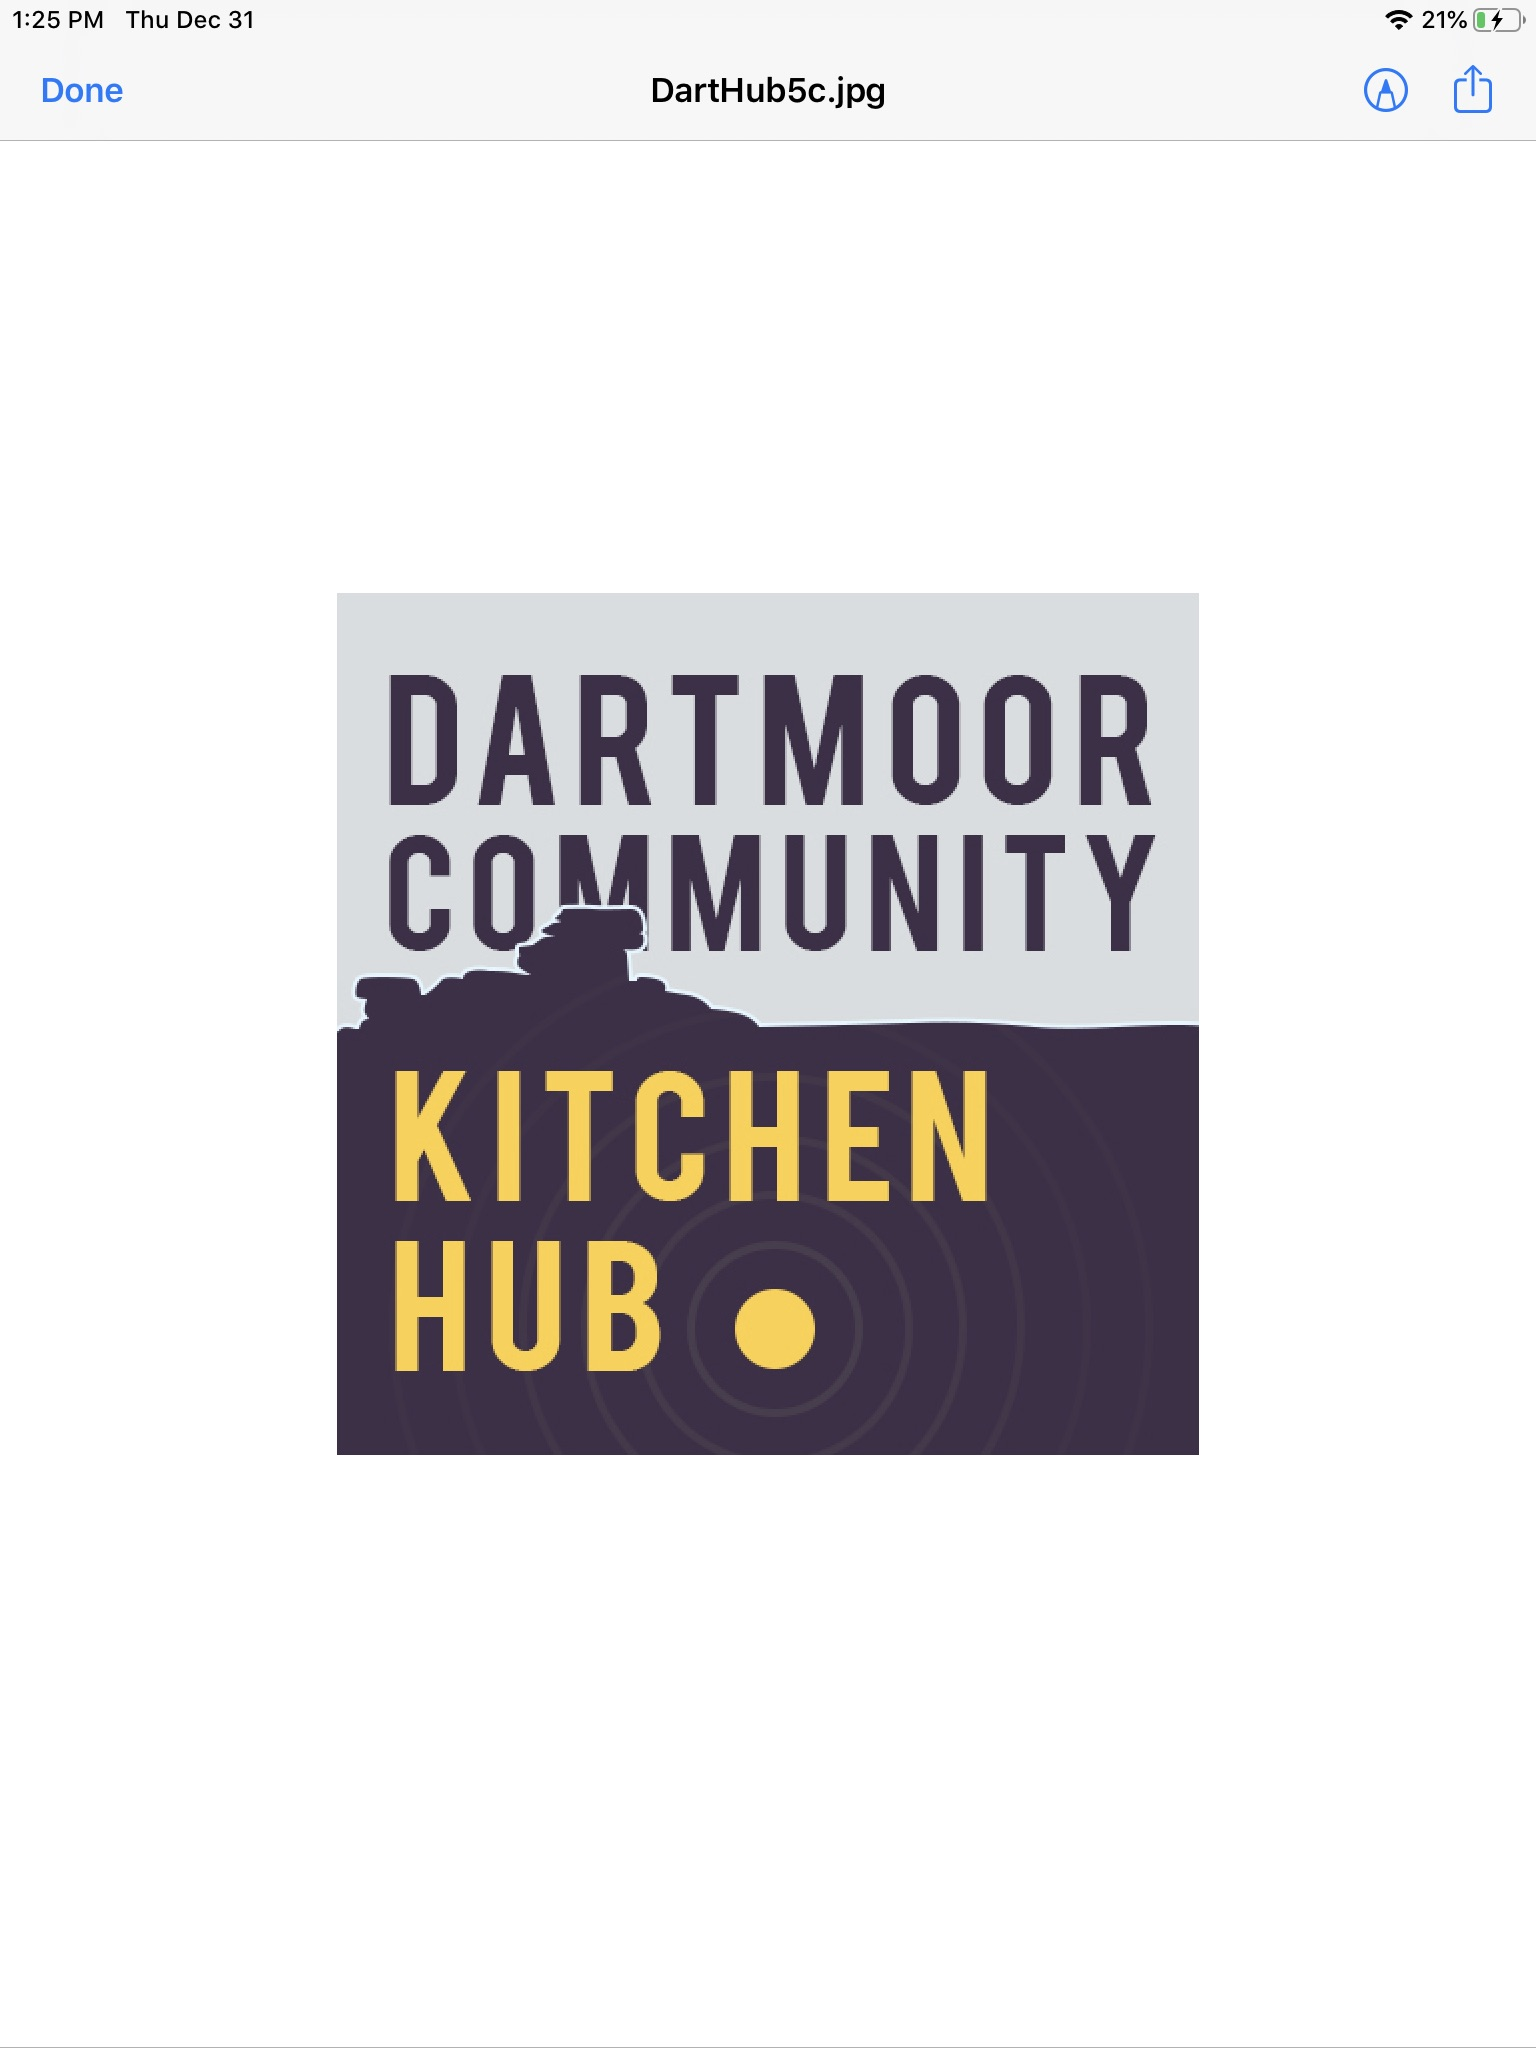 Dartmoor Community Kitchen Hub